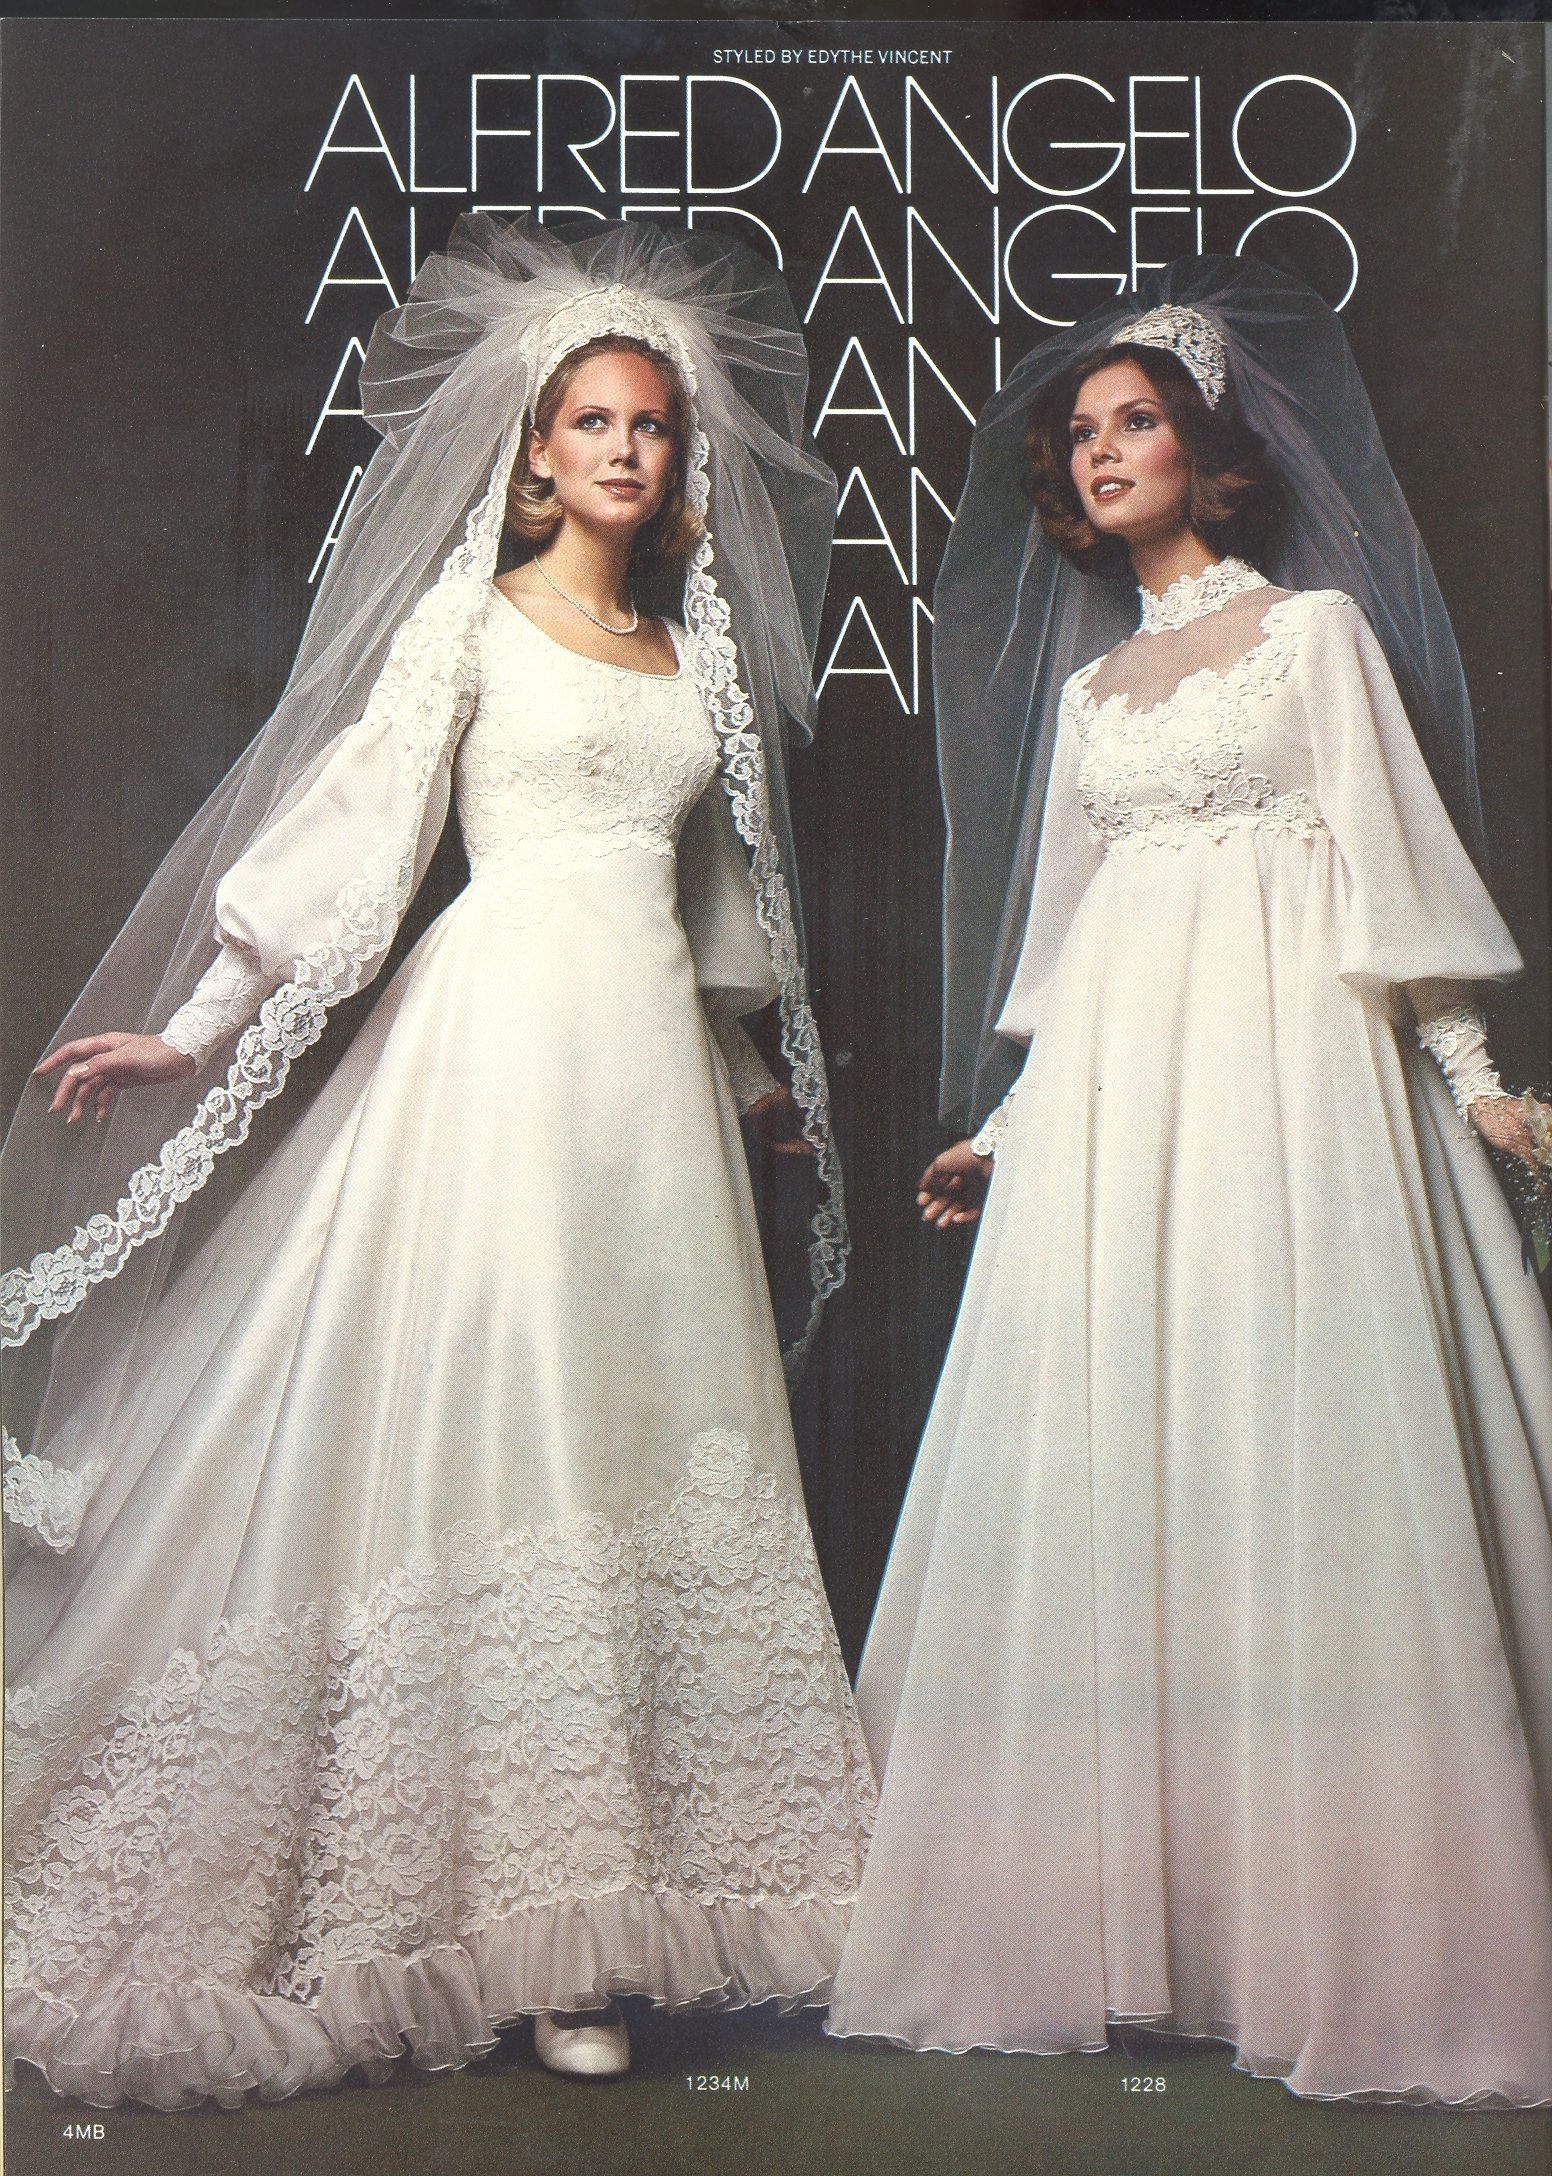 Alfred Angelo Vintage Designer Fashion Bride Ad Styled By Edythe